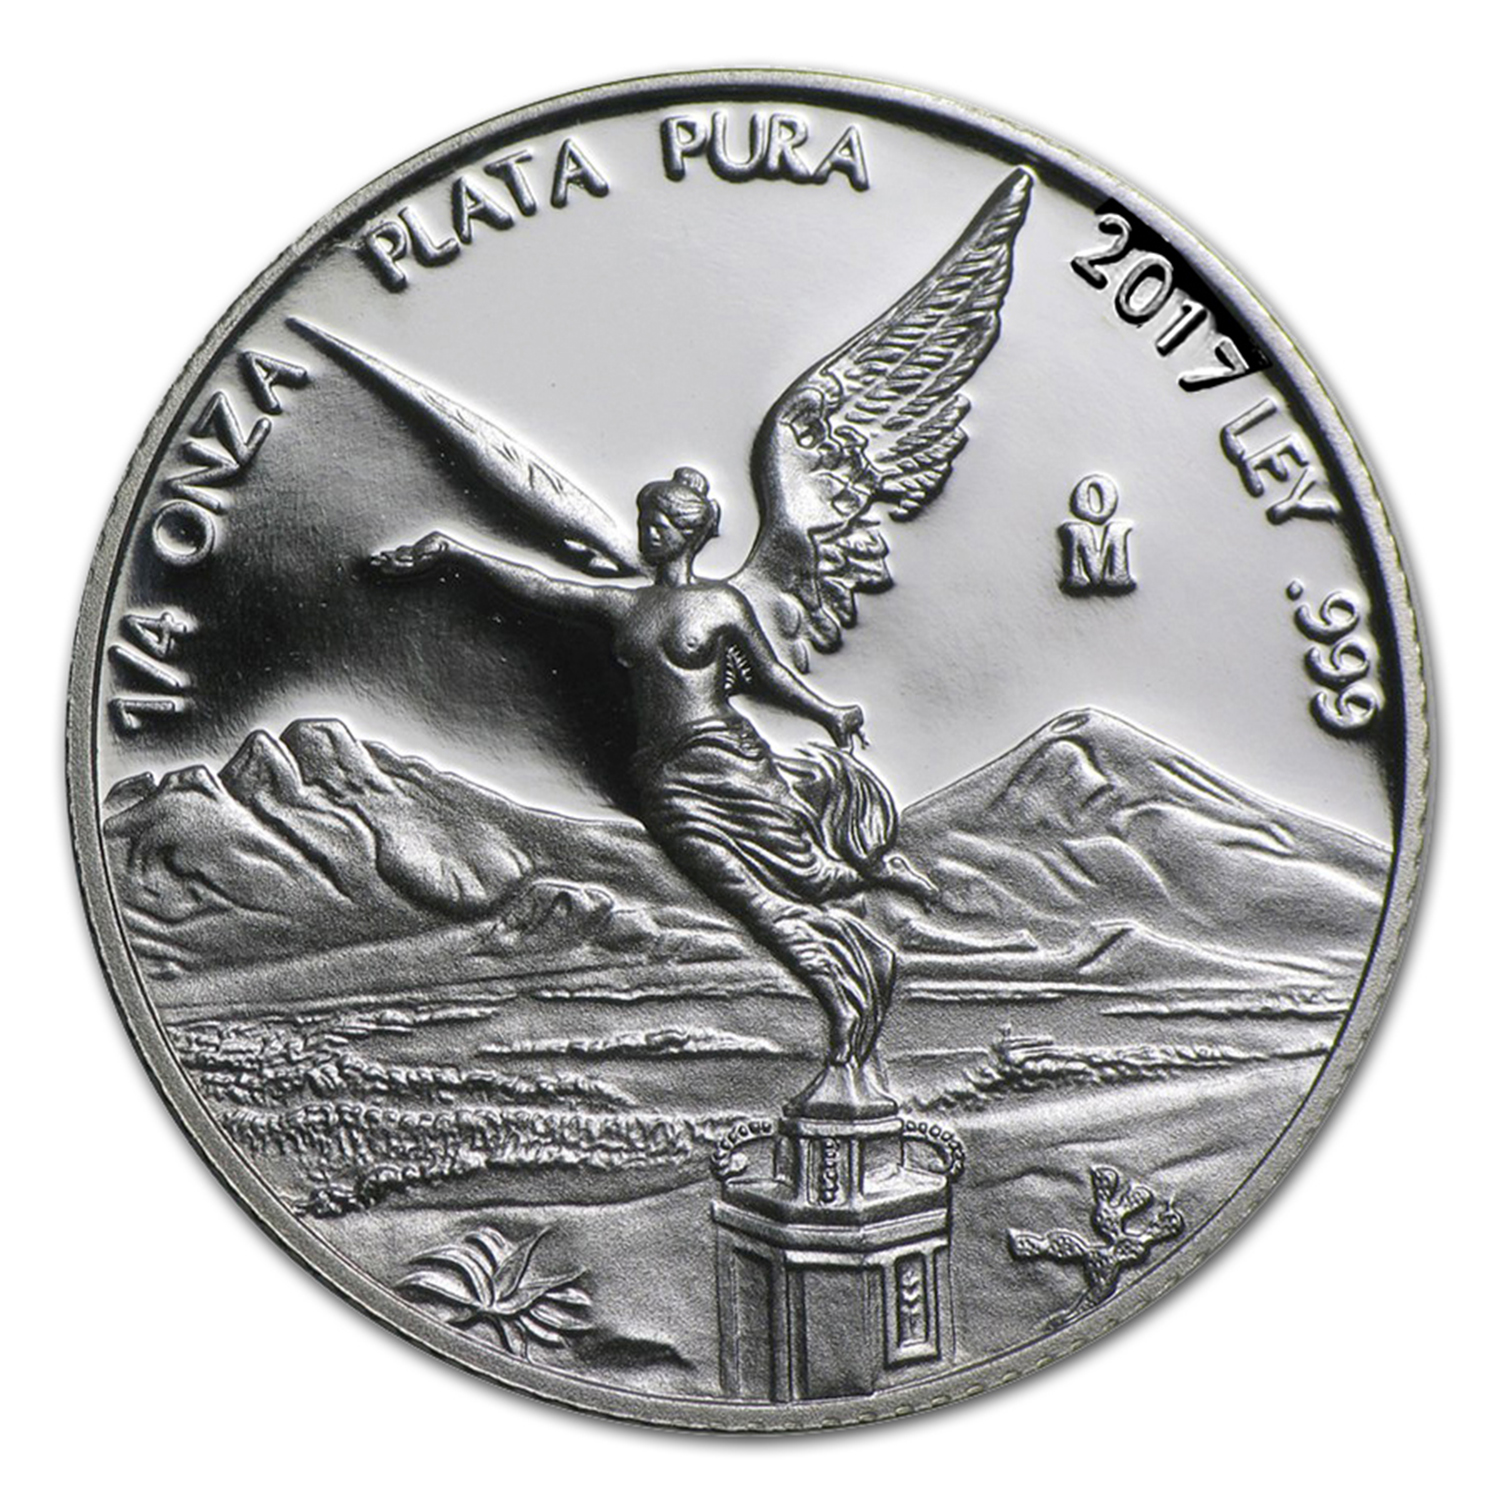 2017 Mexico 1/4 oz Silver Libertad Proof (In Capsule)